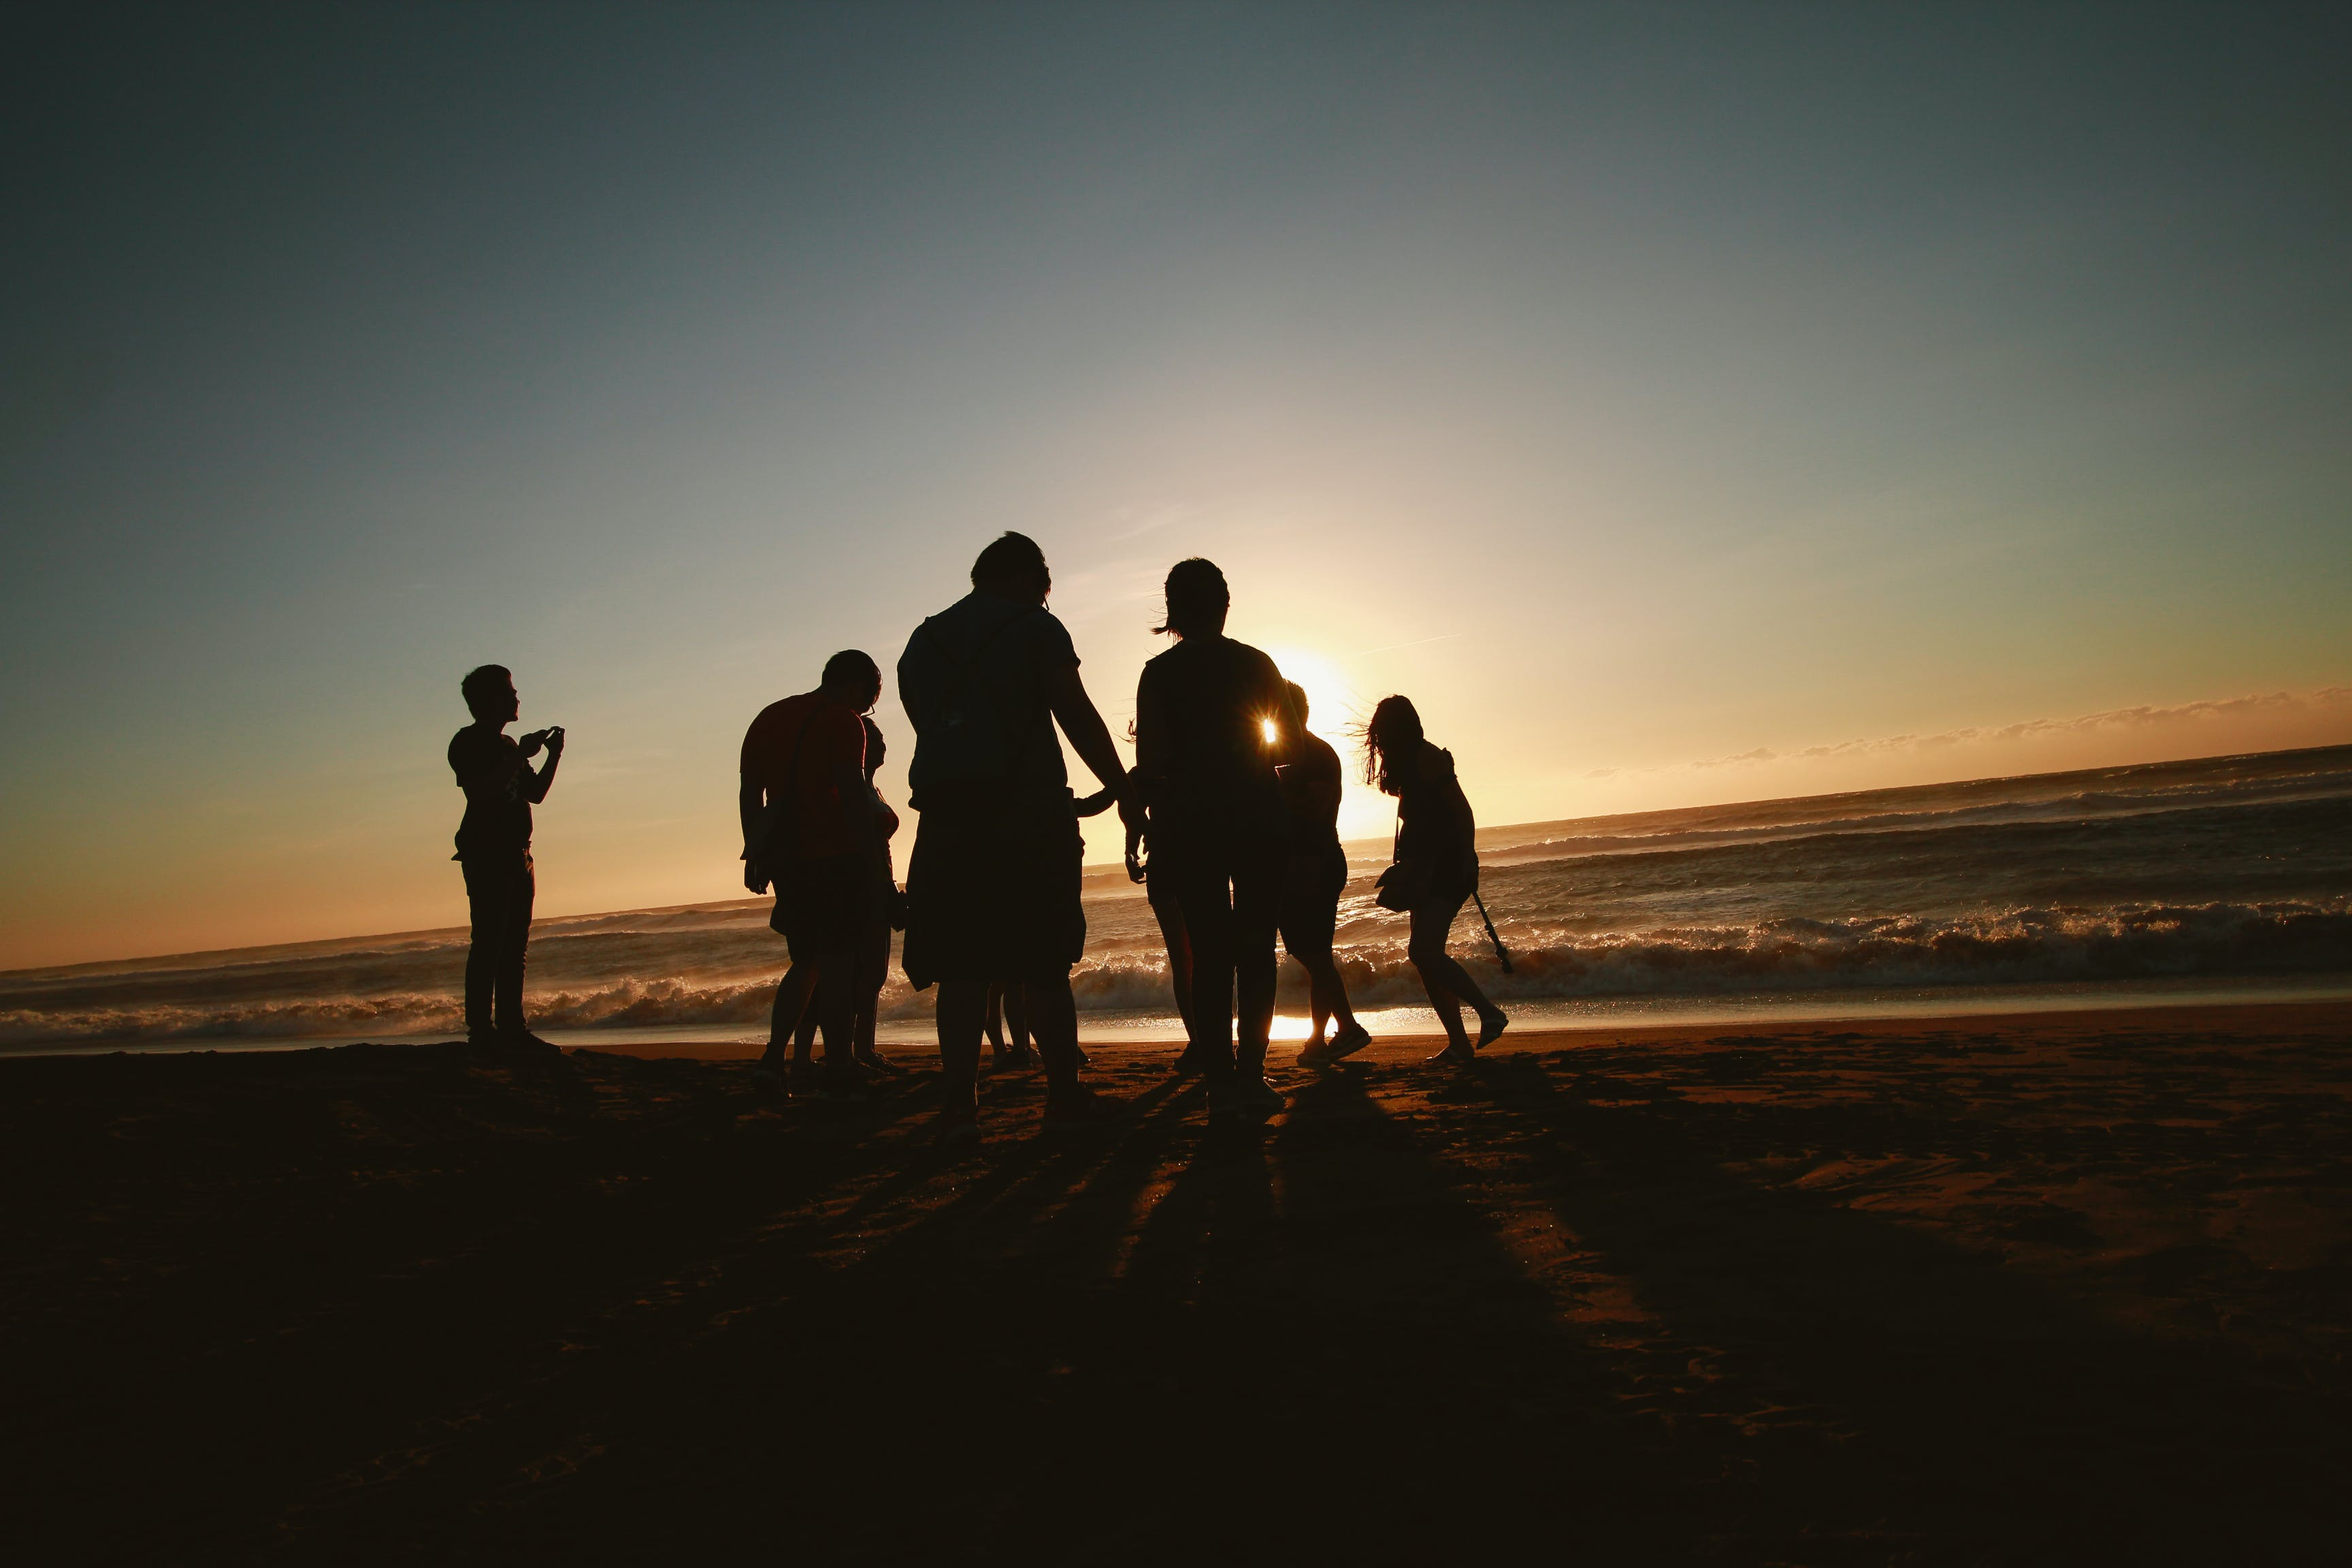 Silhouette Photo of People at the Seashore